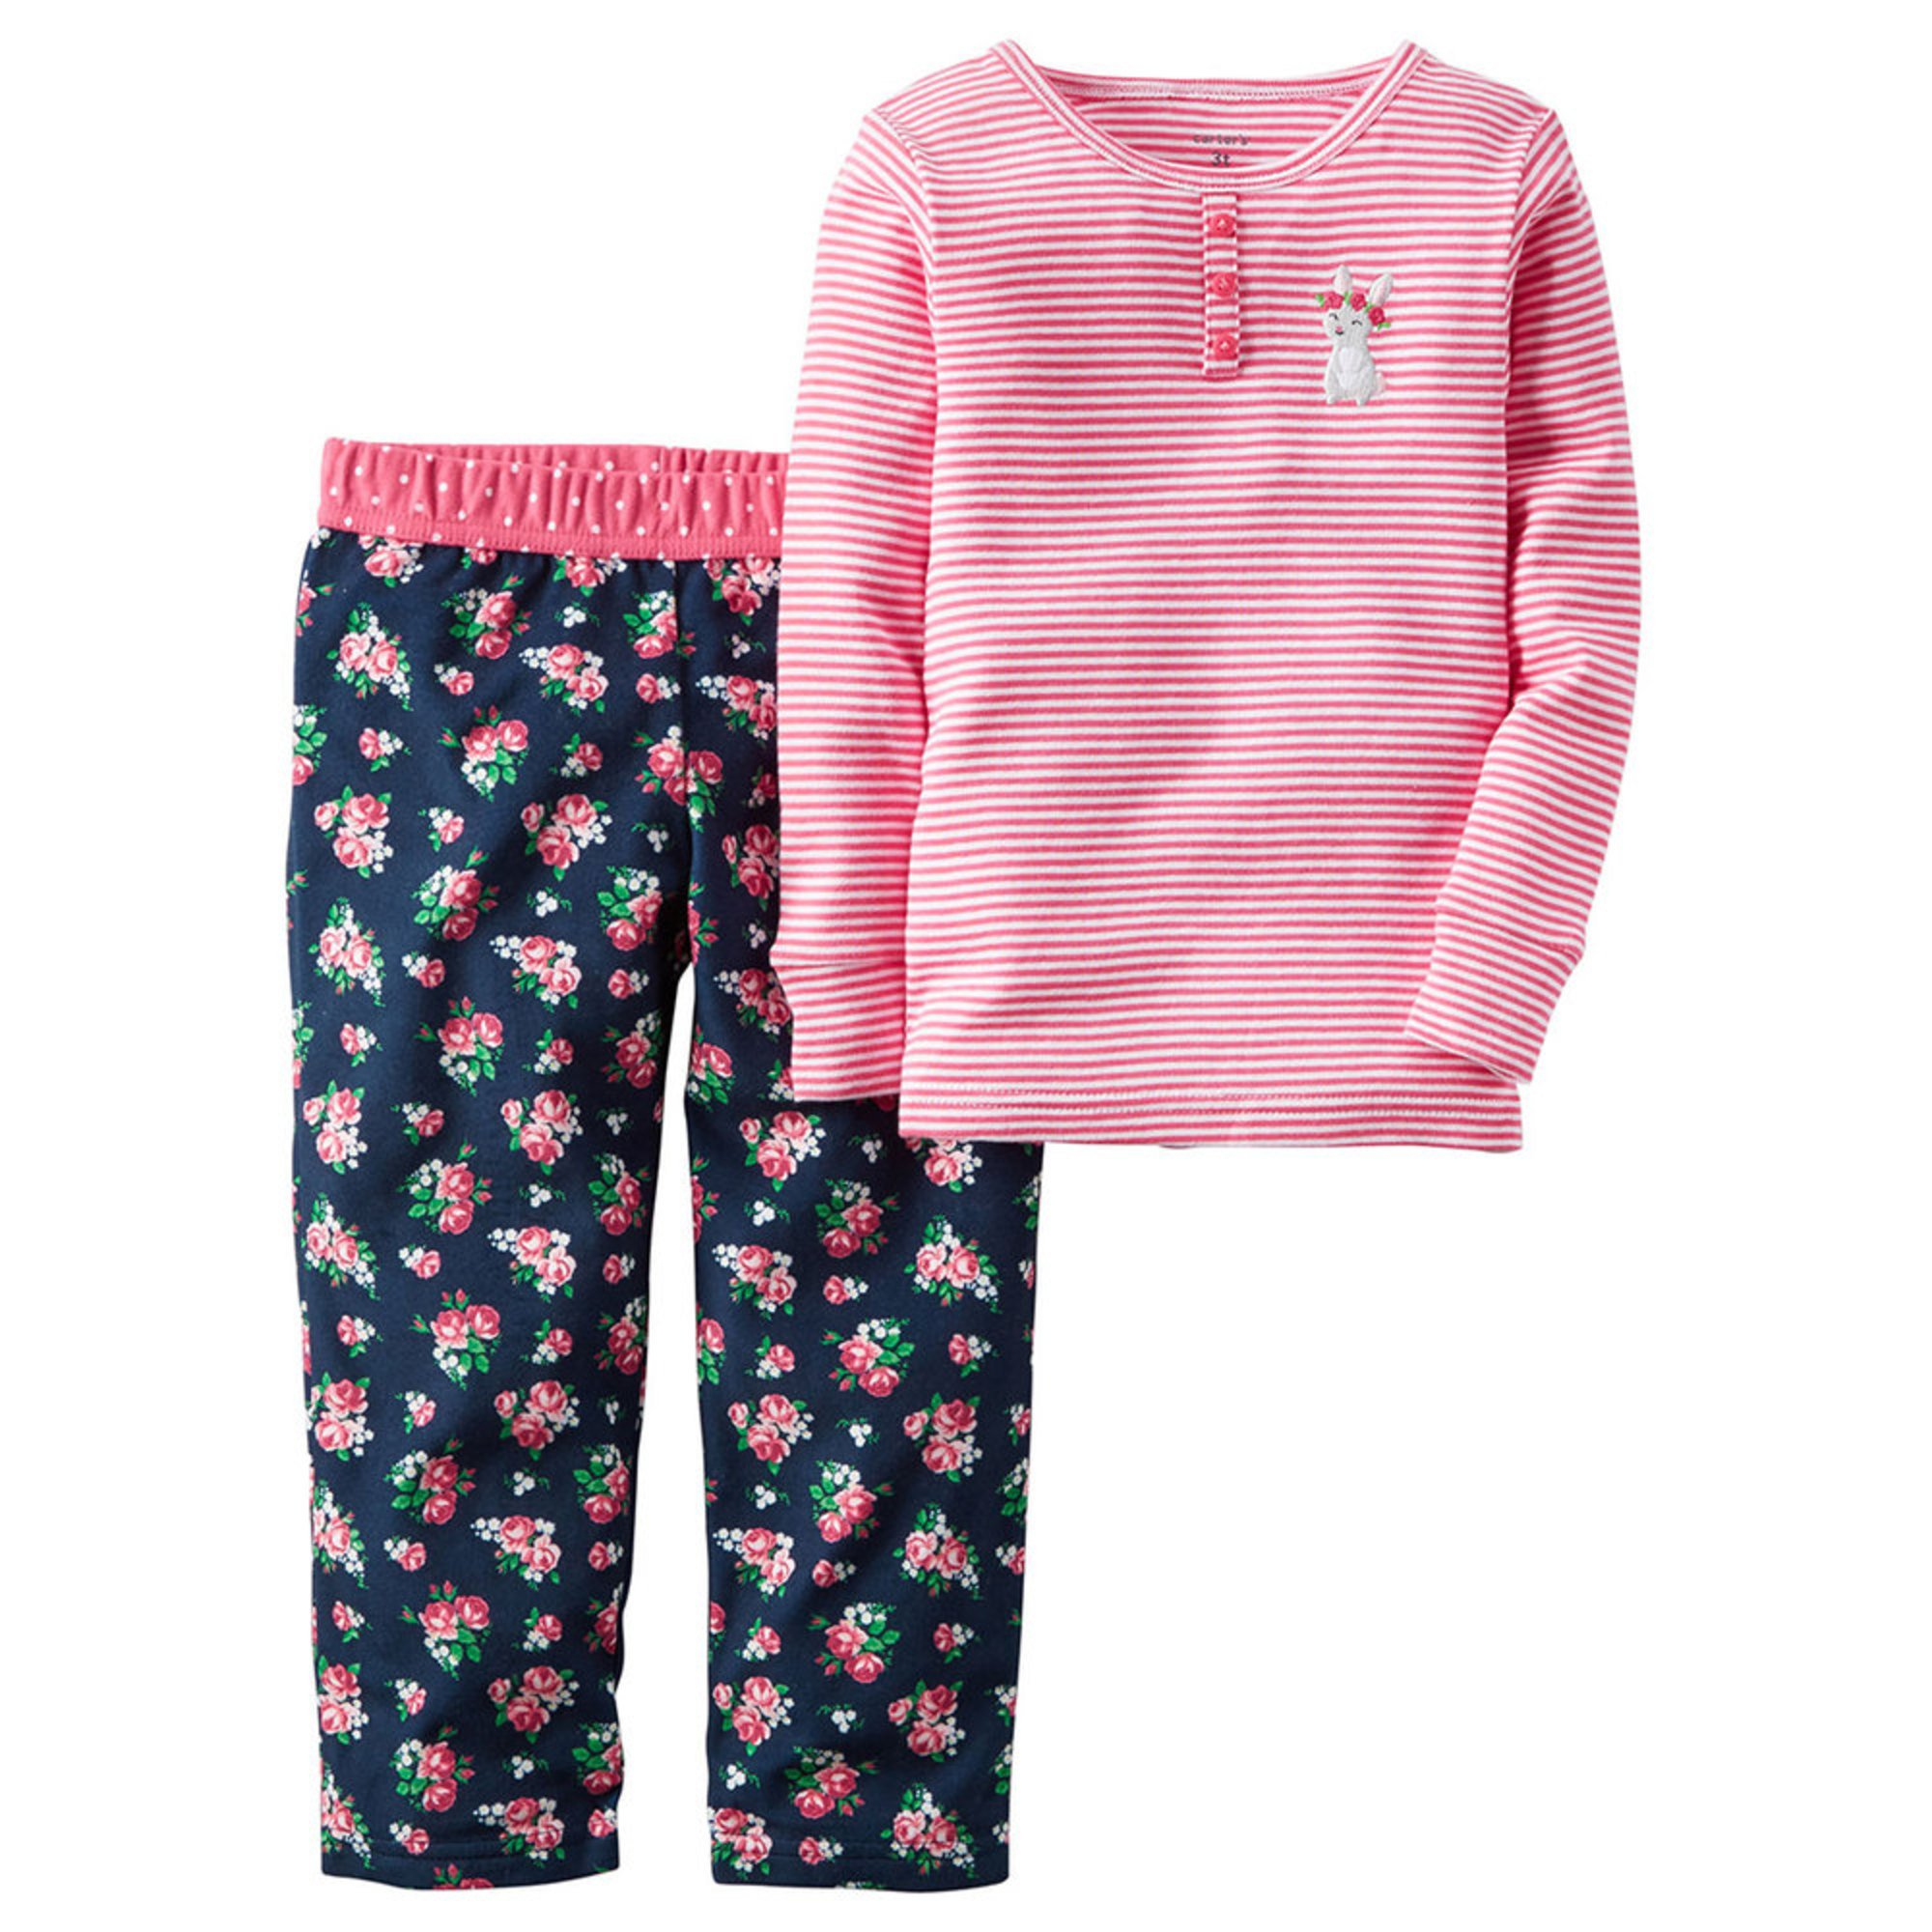 2 Piece Pajamas. invalid category id. 2 Piece Pajamas. Showing 40 of 83 results that match your query. Hello Kitty Pink One Piece Hooded Pajama. Reduced Price. Product Image. We focused on the bestselling products customers like you want most in categories like Baby, Clothing, Electronics and Health & Beauty. Marketplace items.